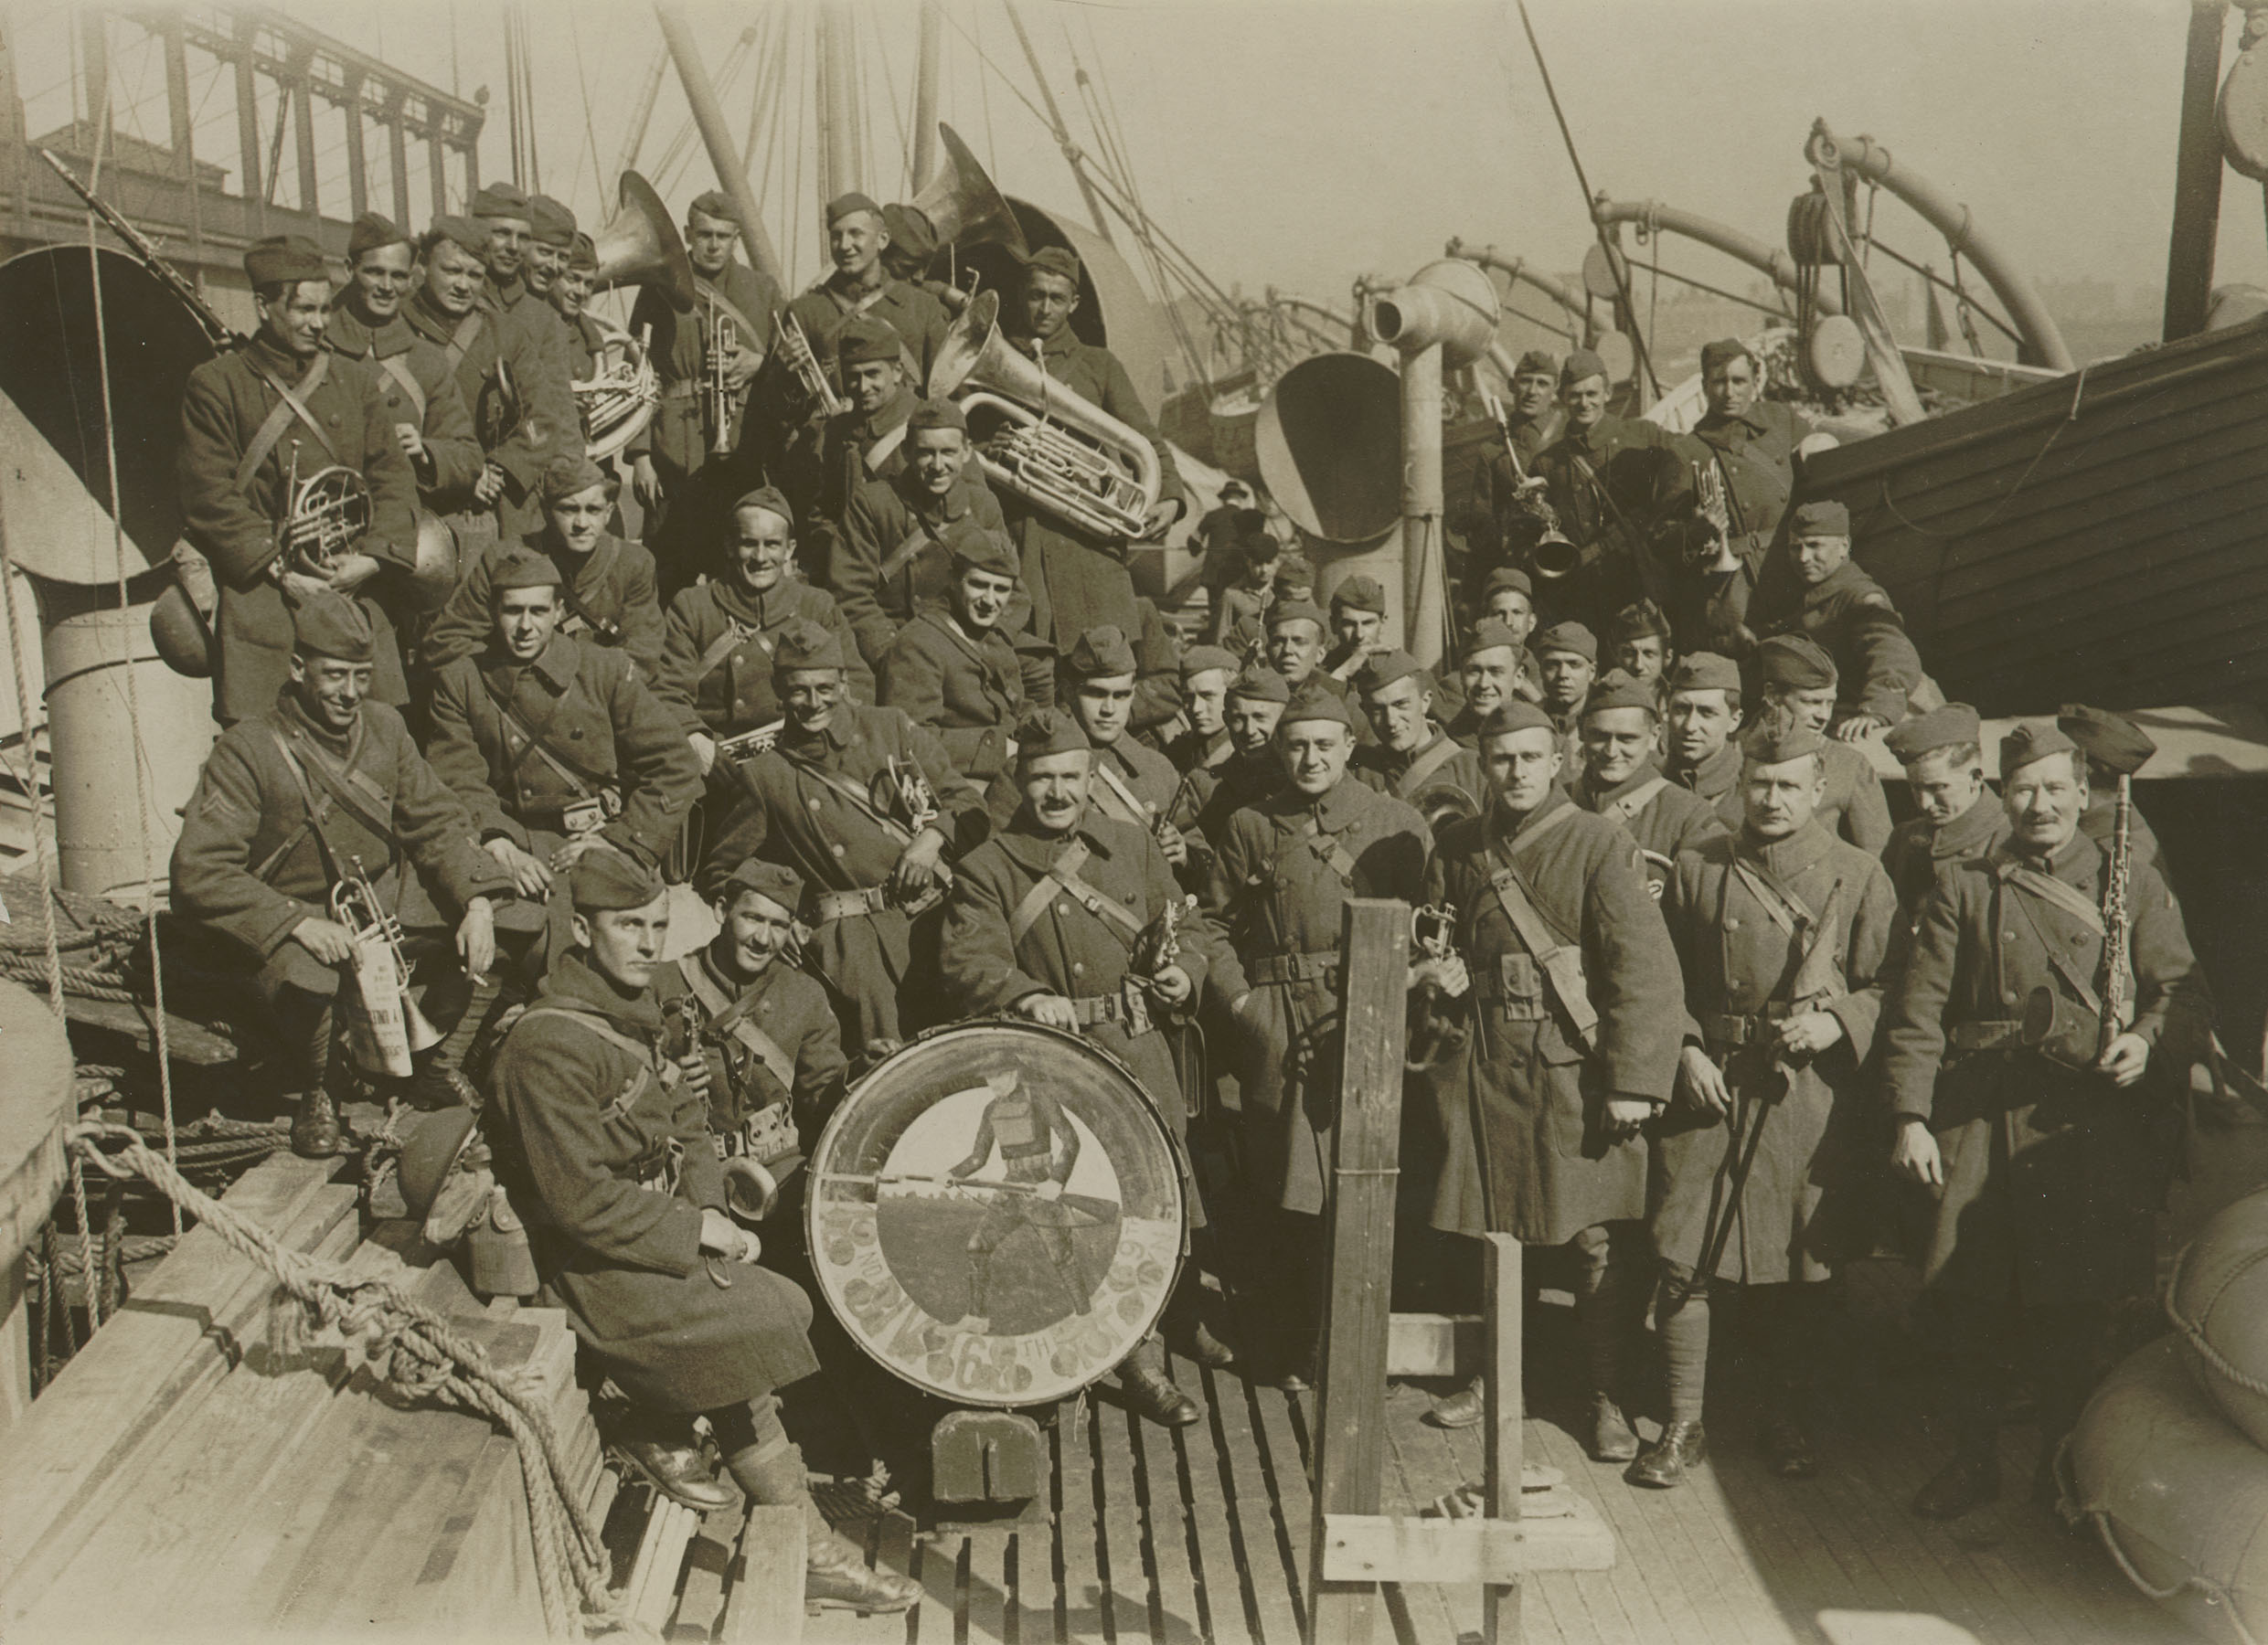 Army Band, 42nd Division, 165th Infantry, 69th N.Y., 1919. Underwood & Underwood. Mayor's Reception Committee, NYC Municipal Archives.